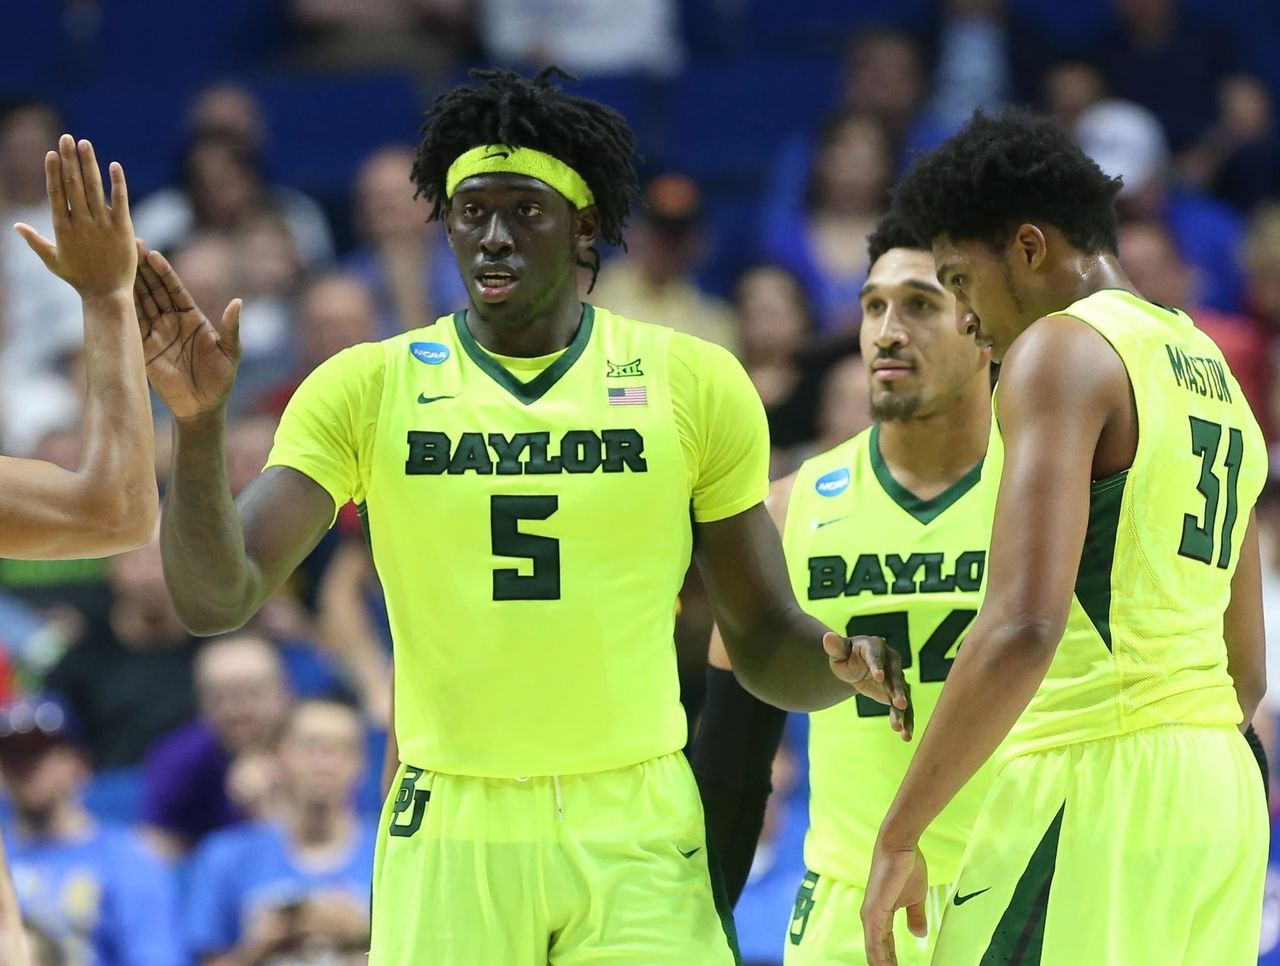 Cropped_2017-03-20t013917z_1078999451_nocid_rtrmadp_3_ncaa-basketball-ncaa-tournament-second-round-baylor-vs-usc